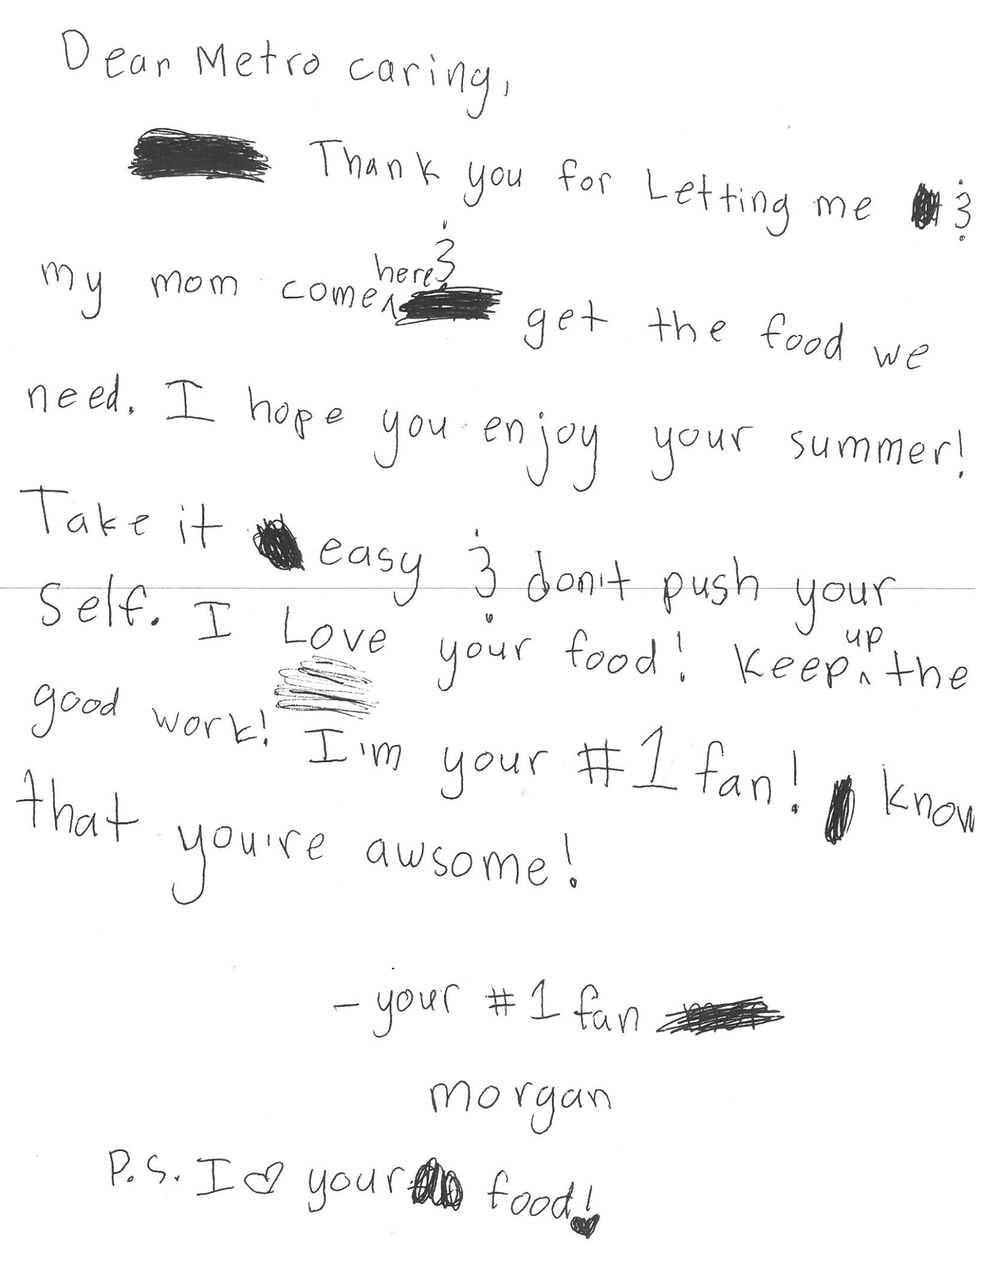 Letter from Morgan, July 2017